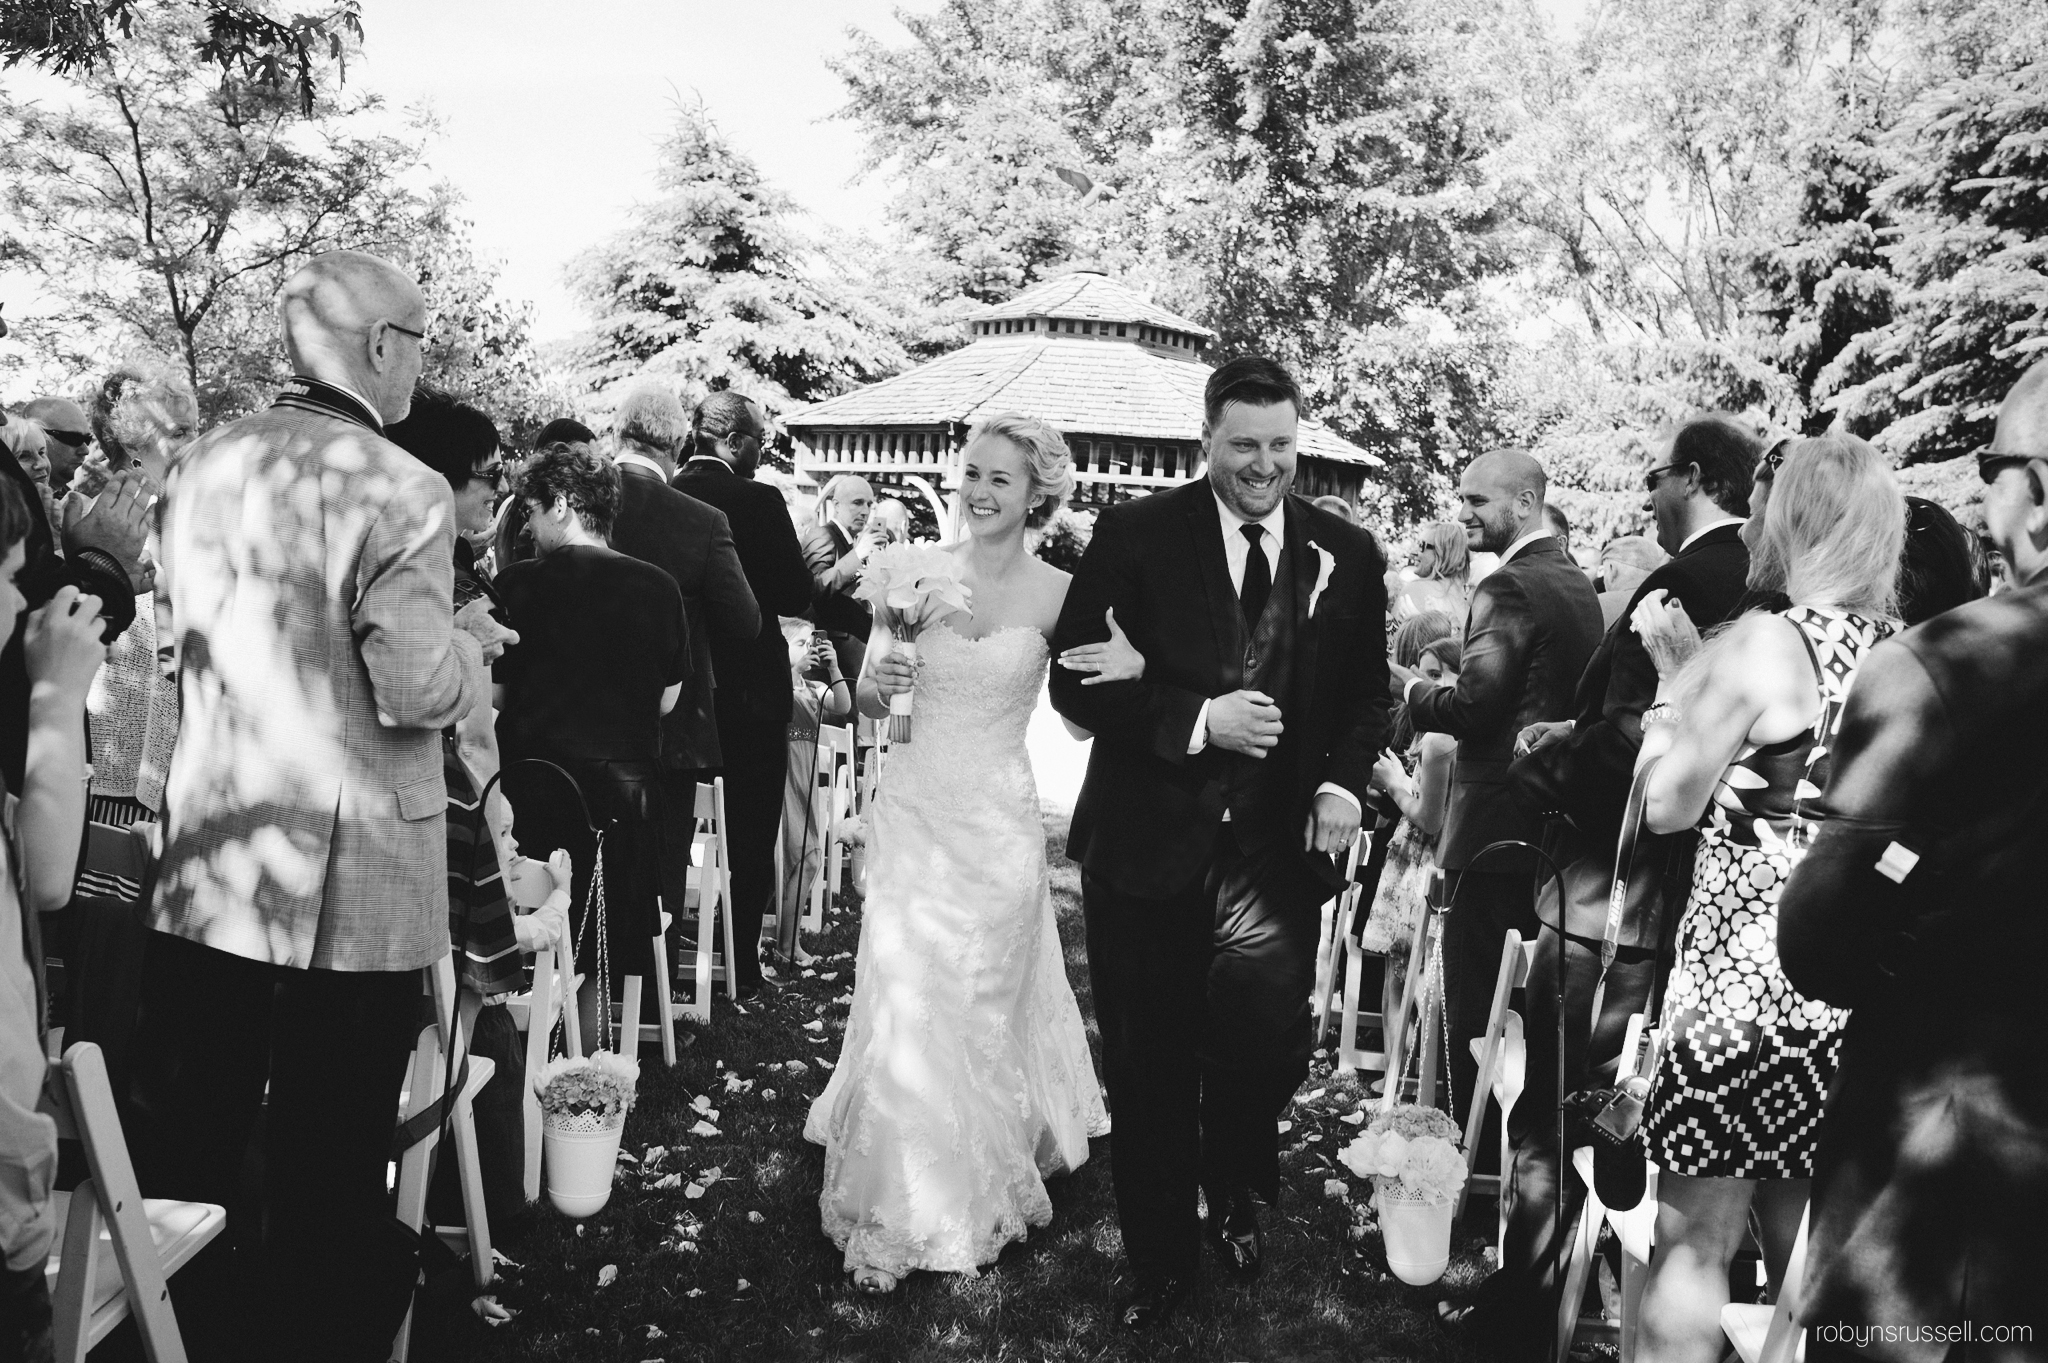 29-bride-and-groom-processional-pipers-heath-bw